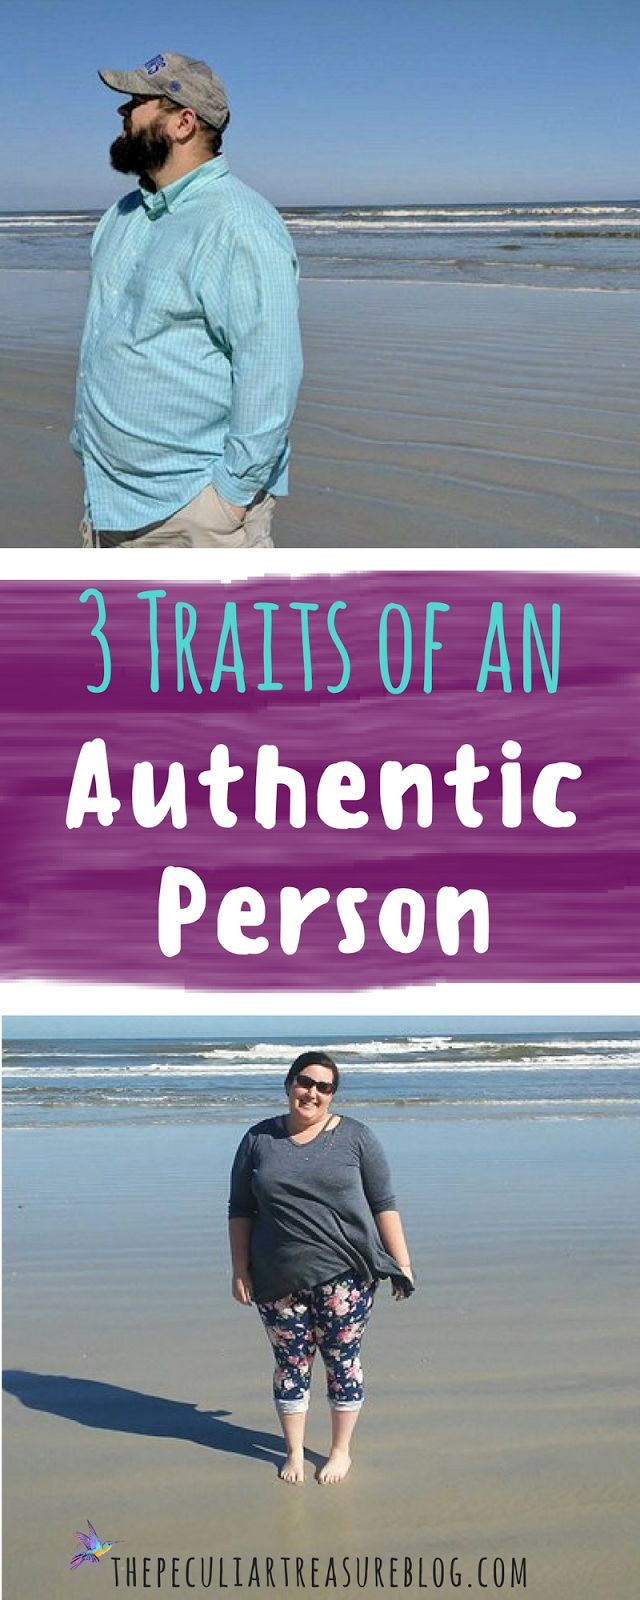 What Does It Mean to Be an Authentic Person? Here are 3 Traits that mark authenticity. #authentic #authenticity #faith #Christianity